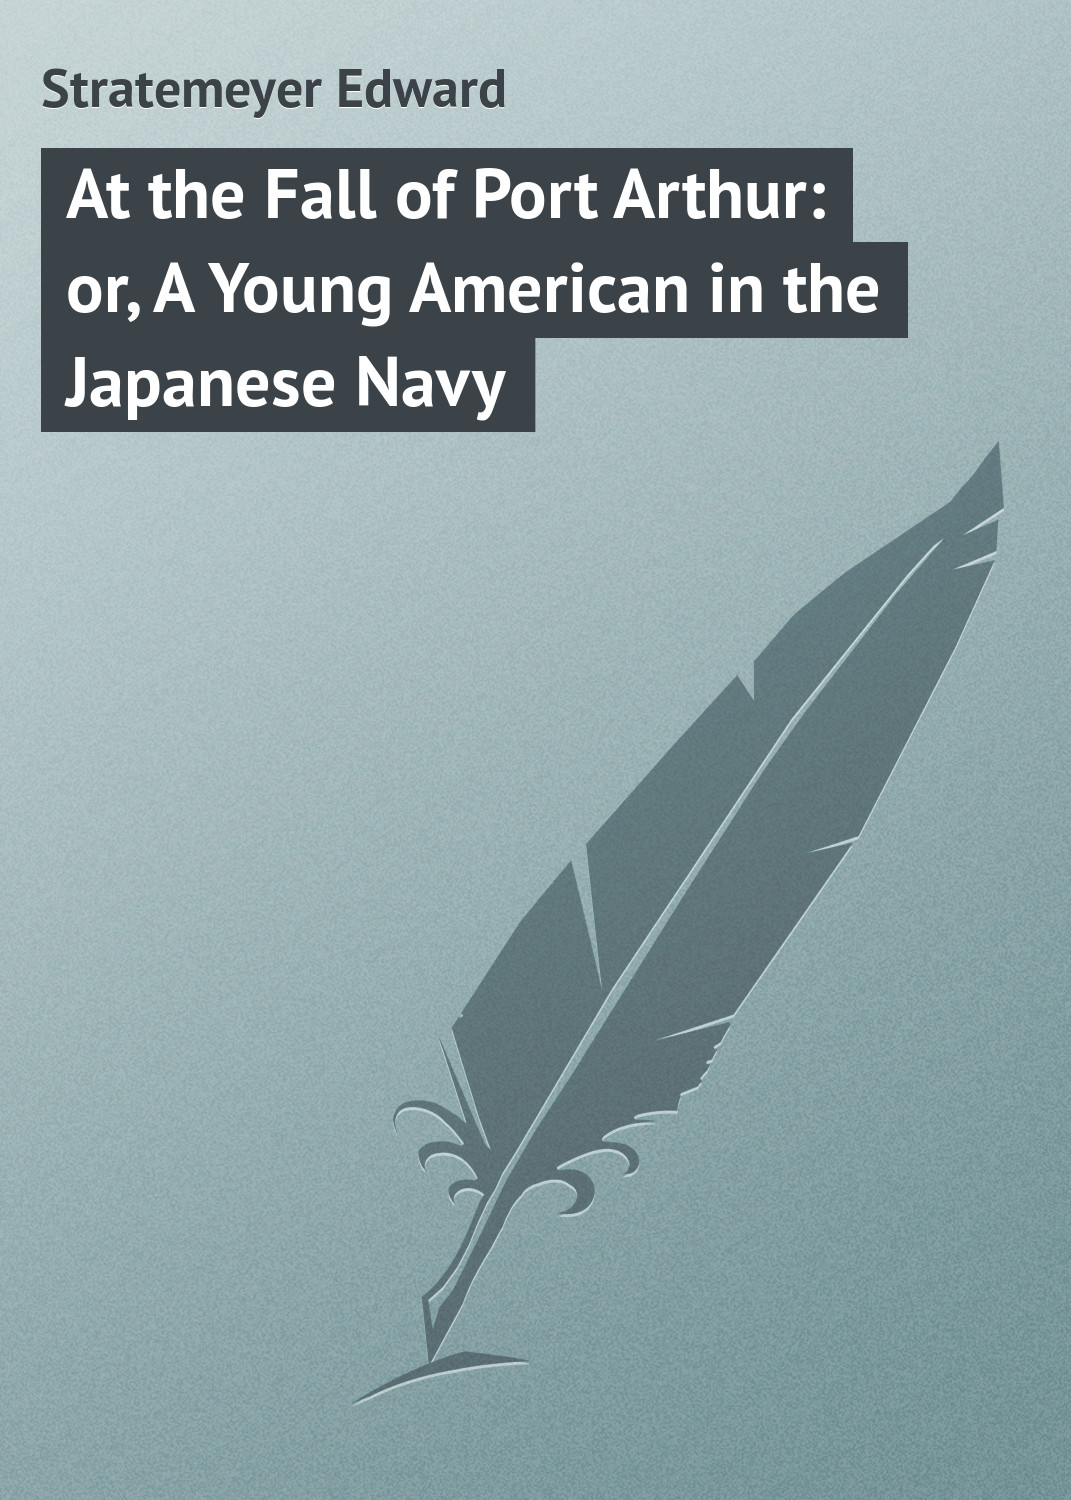 Stratemeyer Edward At the Fall of Port Arthur: or, A Young American in the Japanese Navy рюкзак wenger синий 6793301408